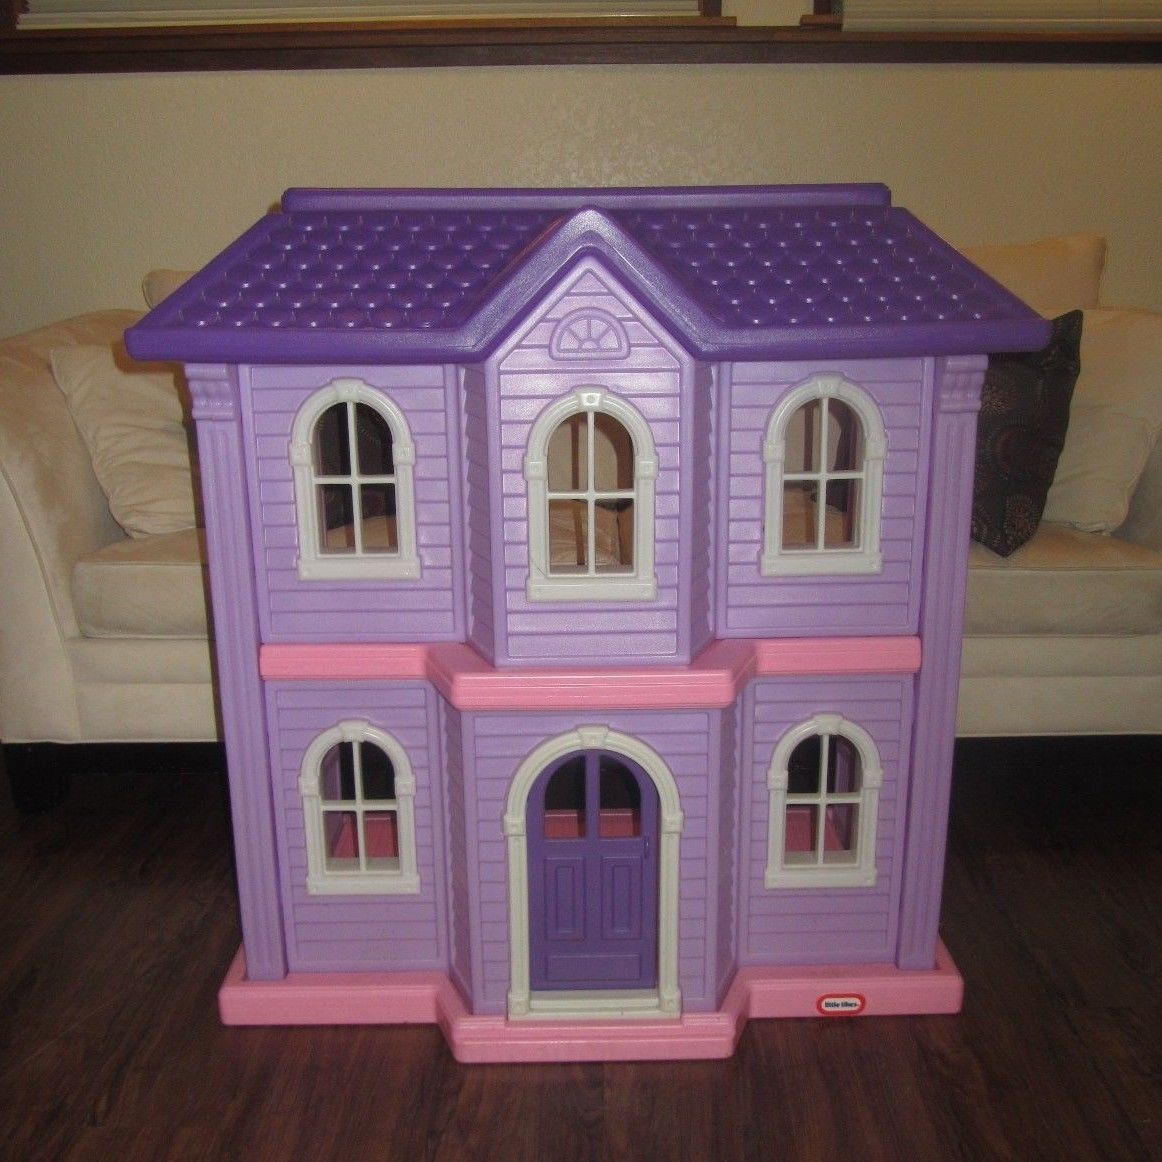 Little Tikes Bedroom Furniture Little Tikes My Size Barbie Pink Doll House Complete With